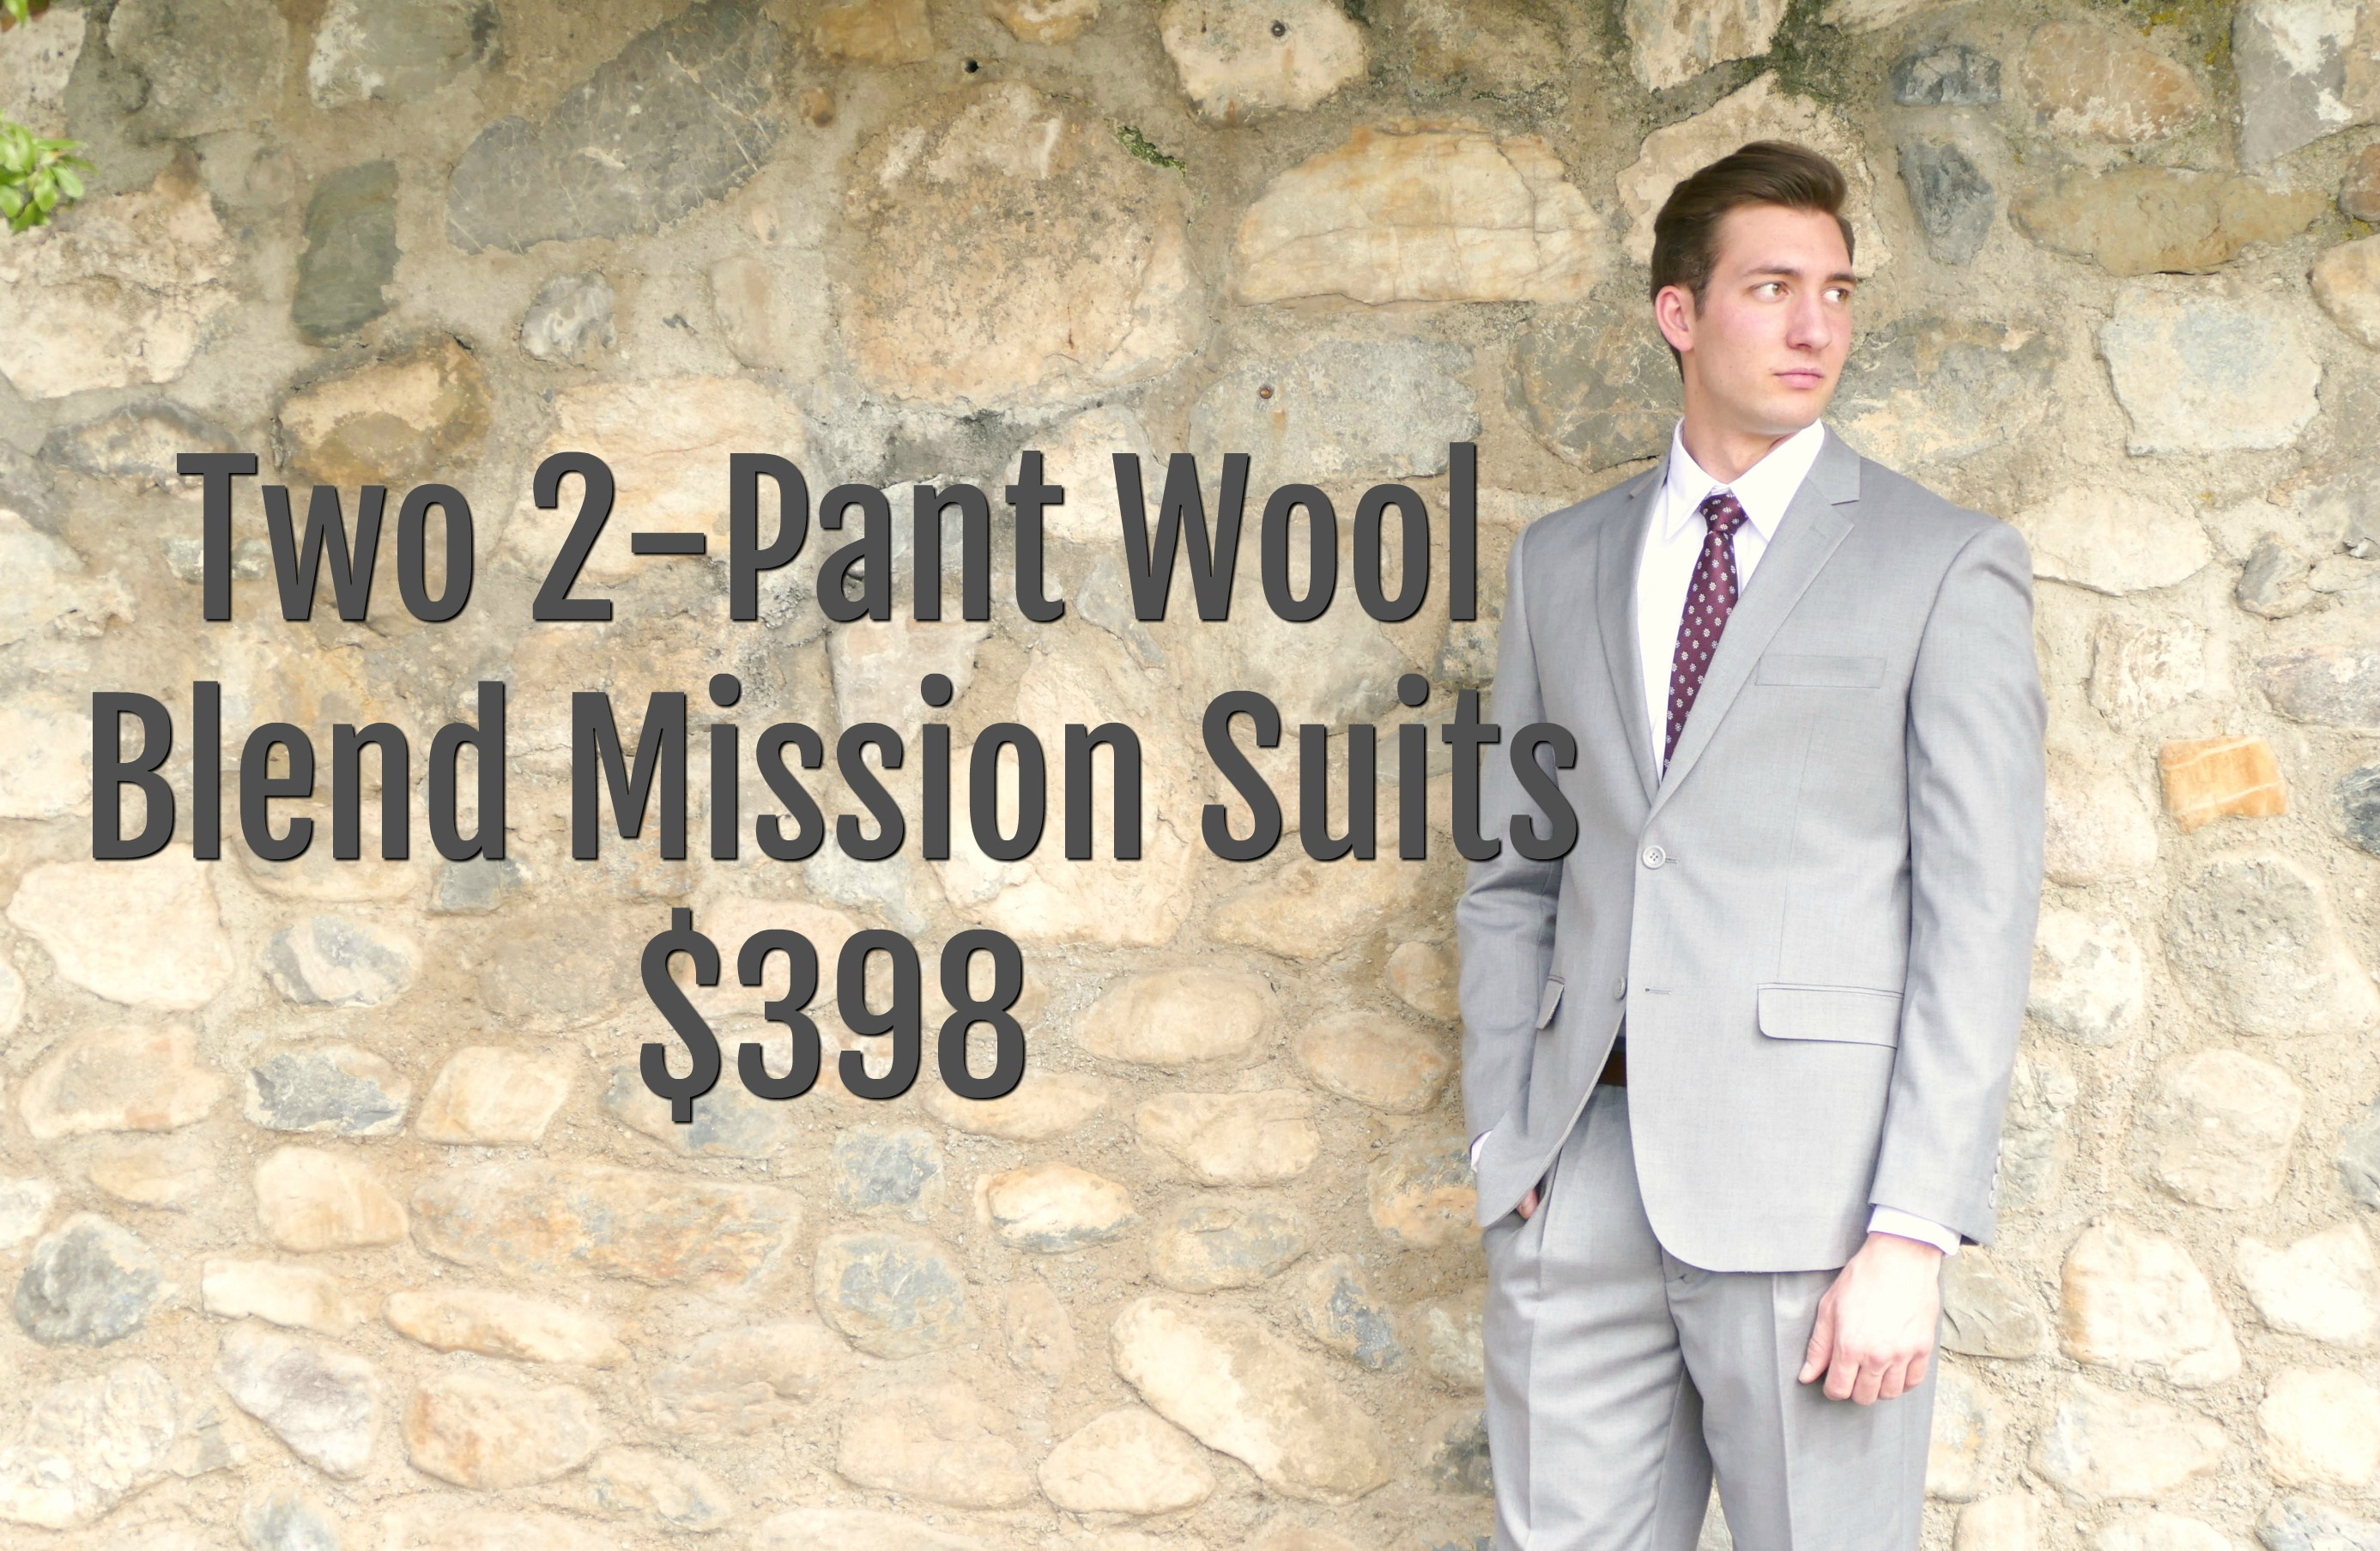 missionarymall mission suit package